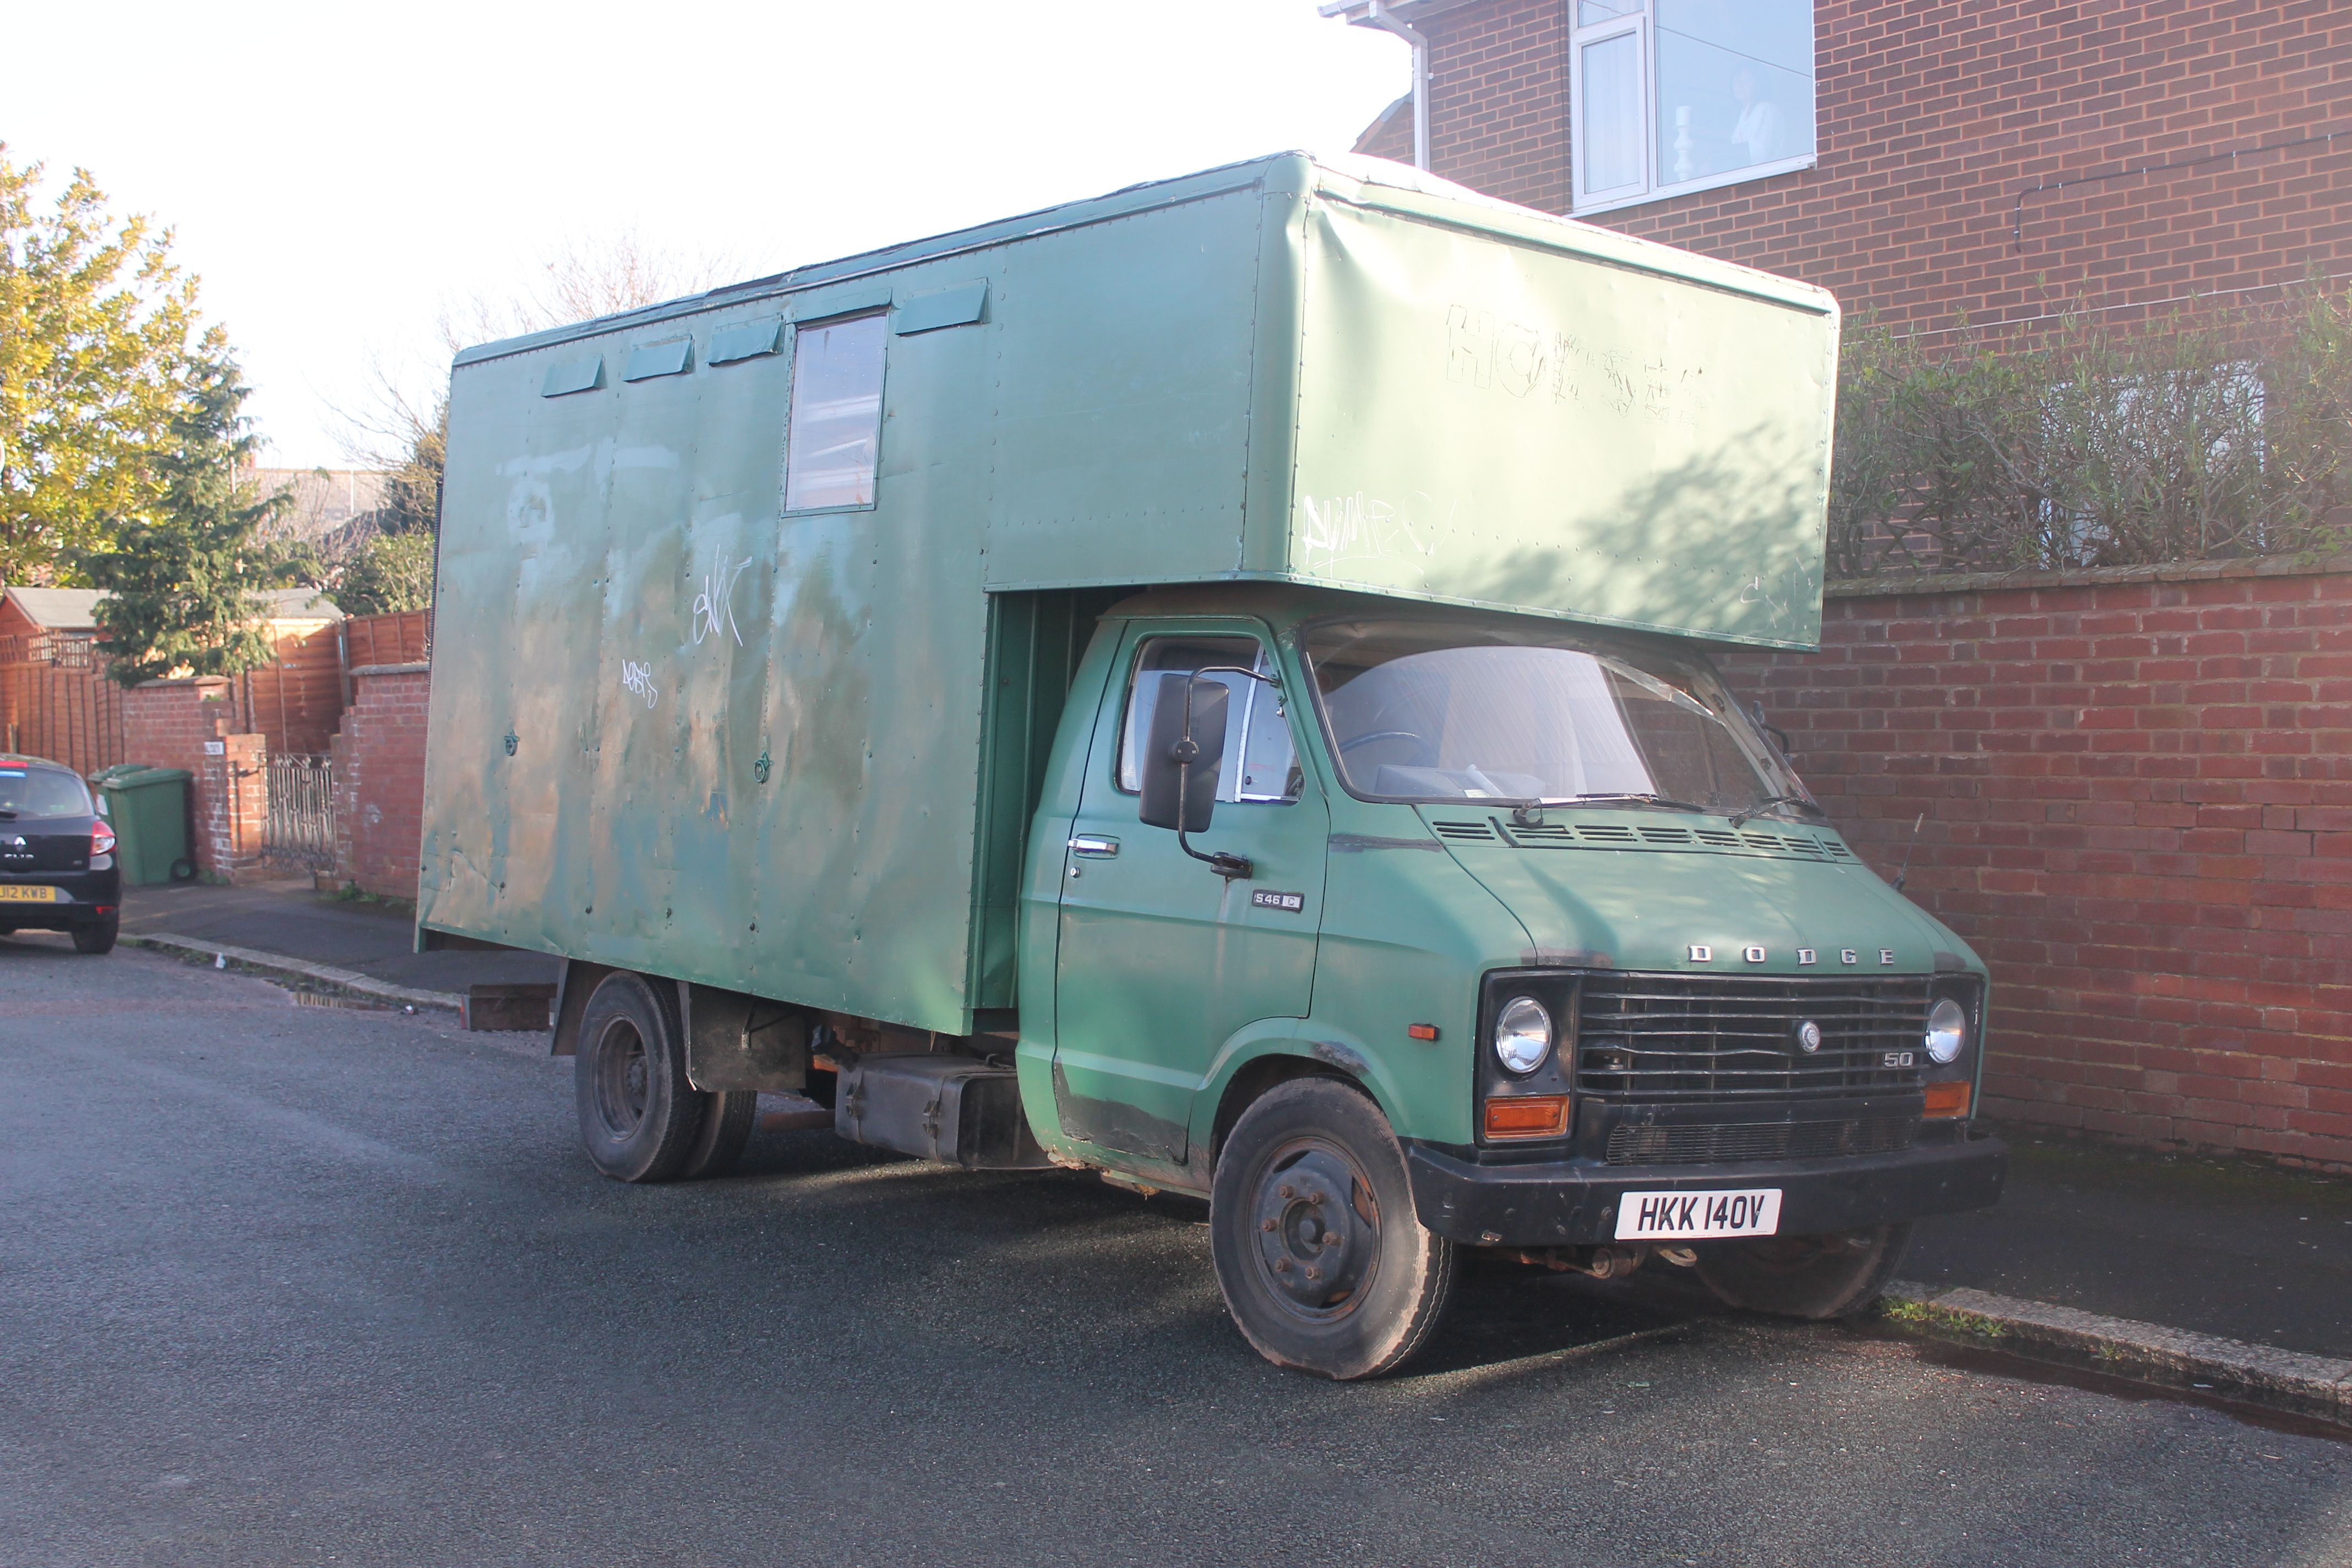 An Image of a moving truck - CC Image by Charlie -> https://www.flickr.com/photos/92622665@N08/